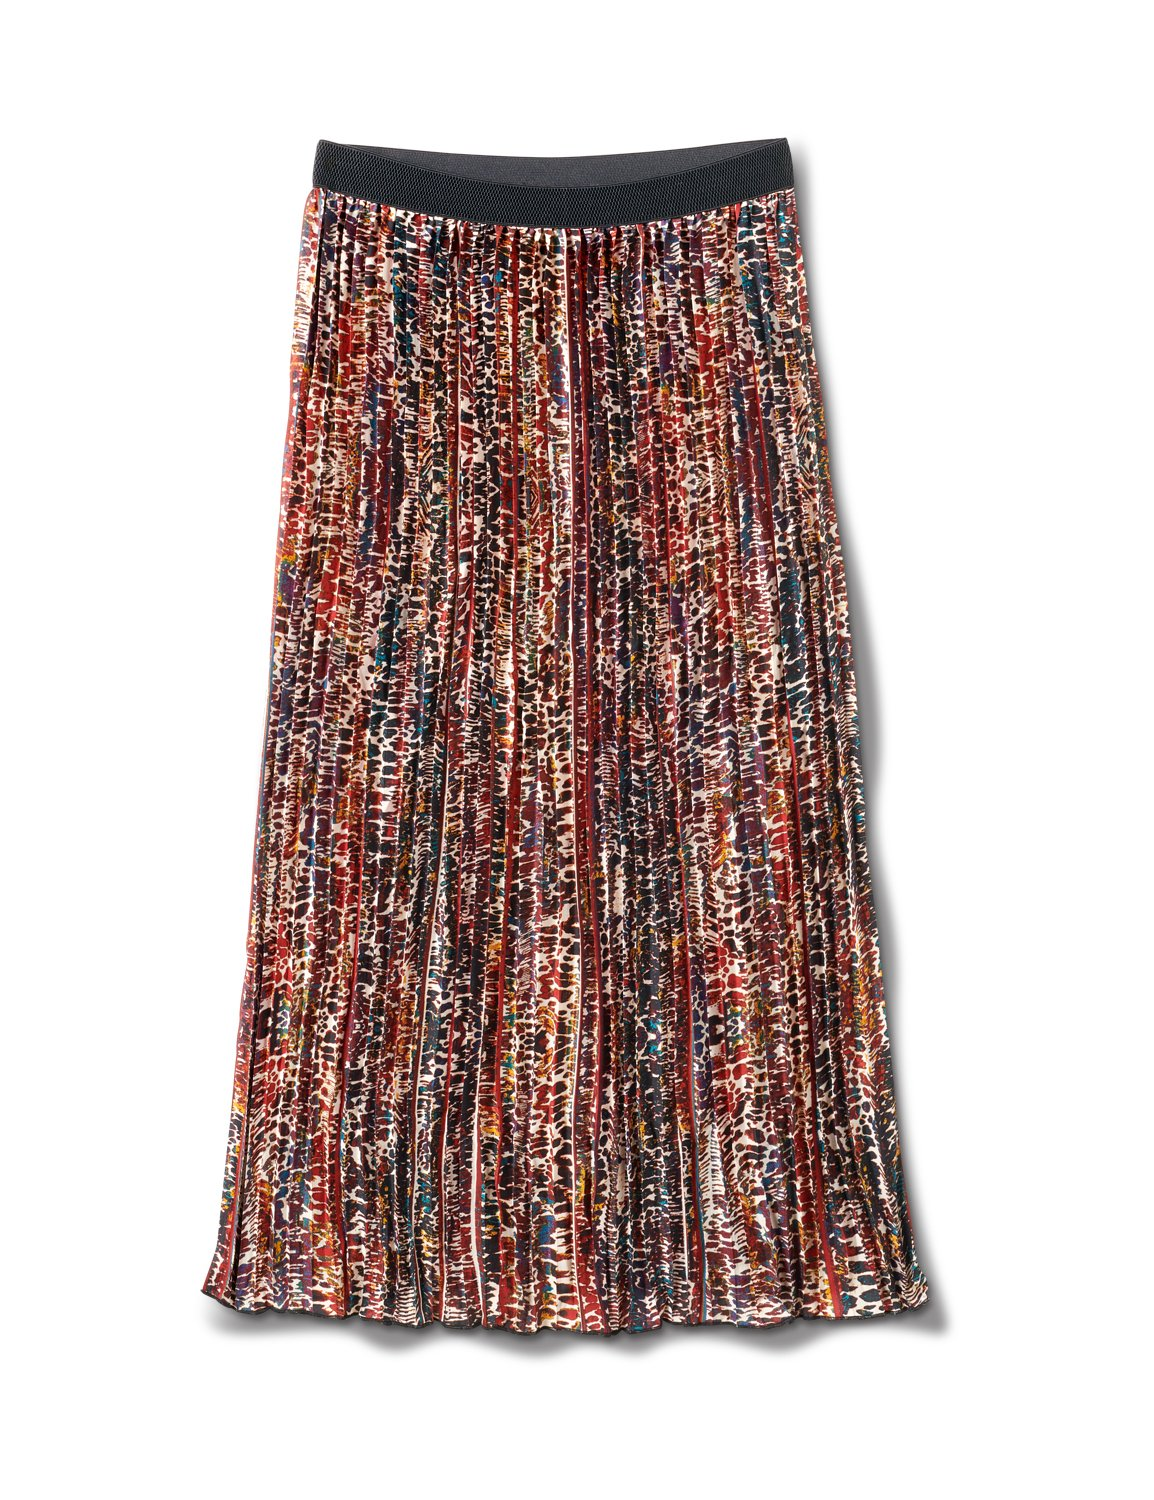 Printed Pleated Skirt With Contrast Elastic Waistband -Animal - Front